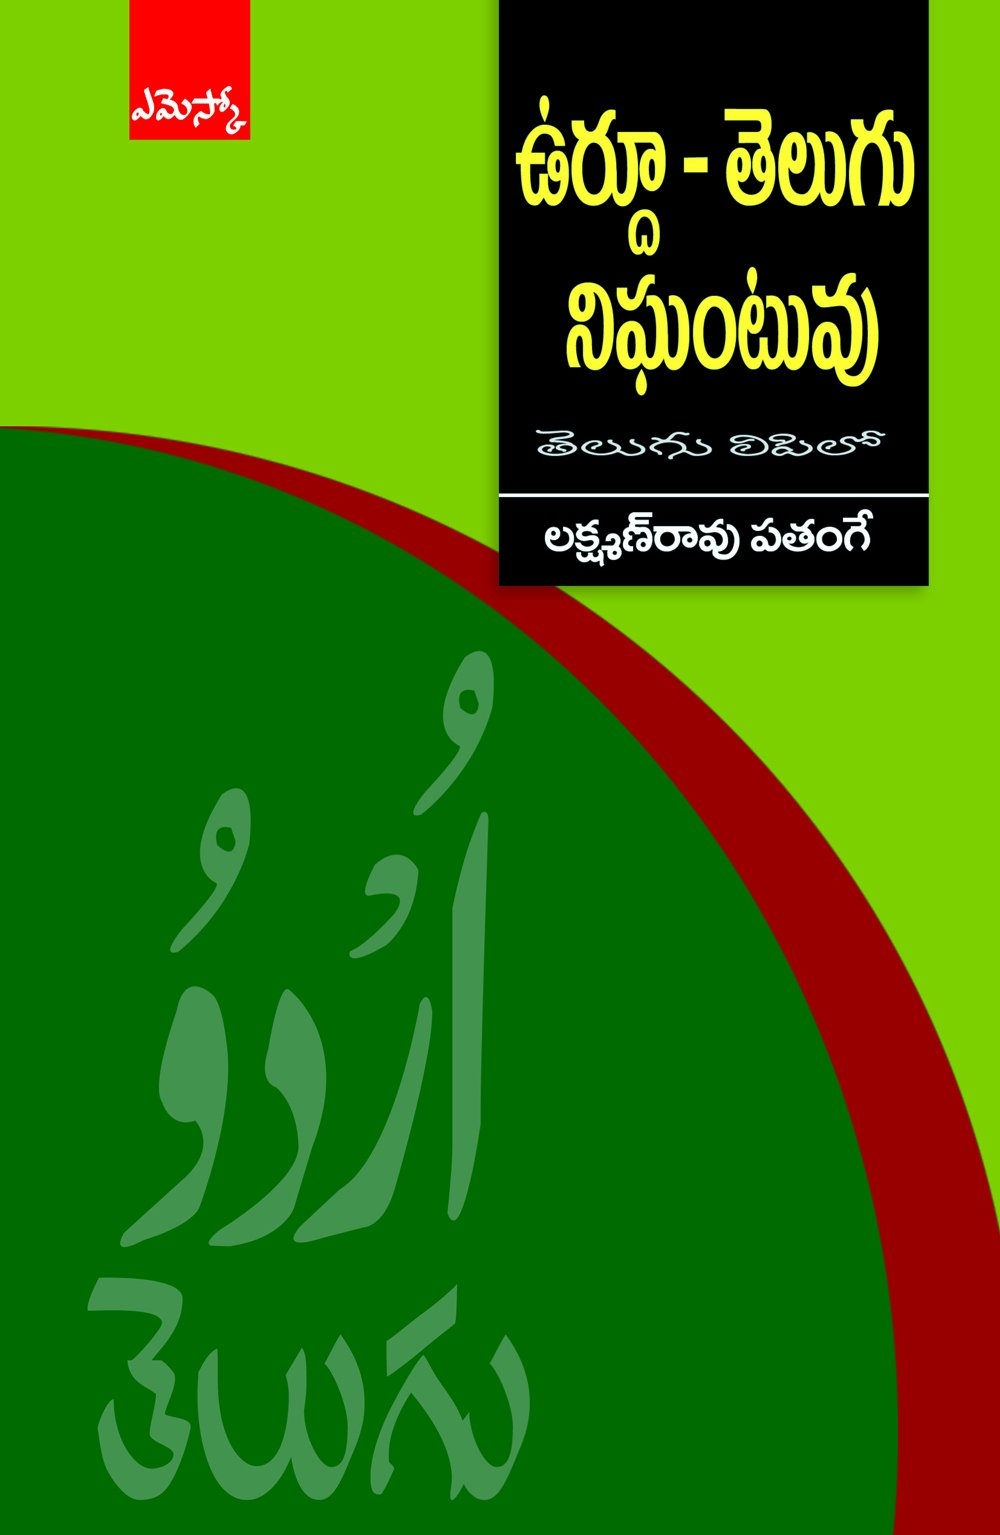 Buy Urdu Telugu Dictionary ఉర ద త ల గ న ఘ ట వ Book Online At Low Prices In India Urdu Telugu Dictionary ఉర ద త ల గ న ఘ ట వ Reviews Ratings Amazon In